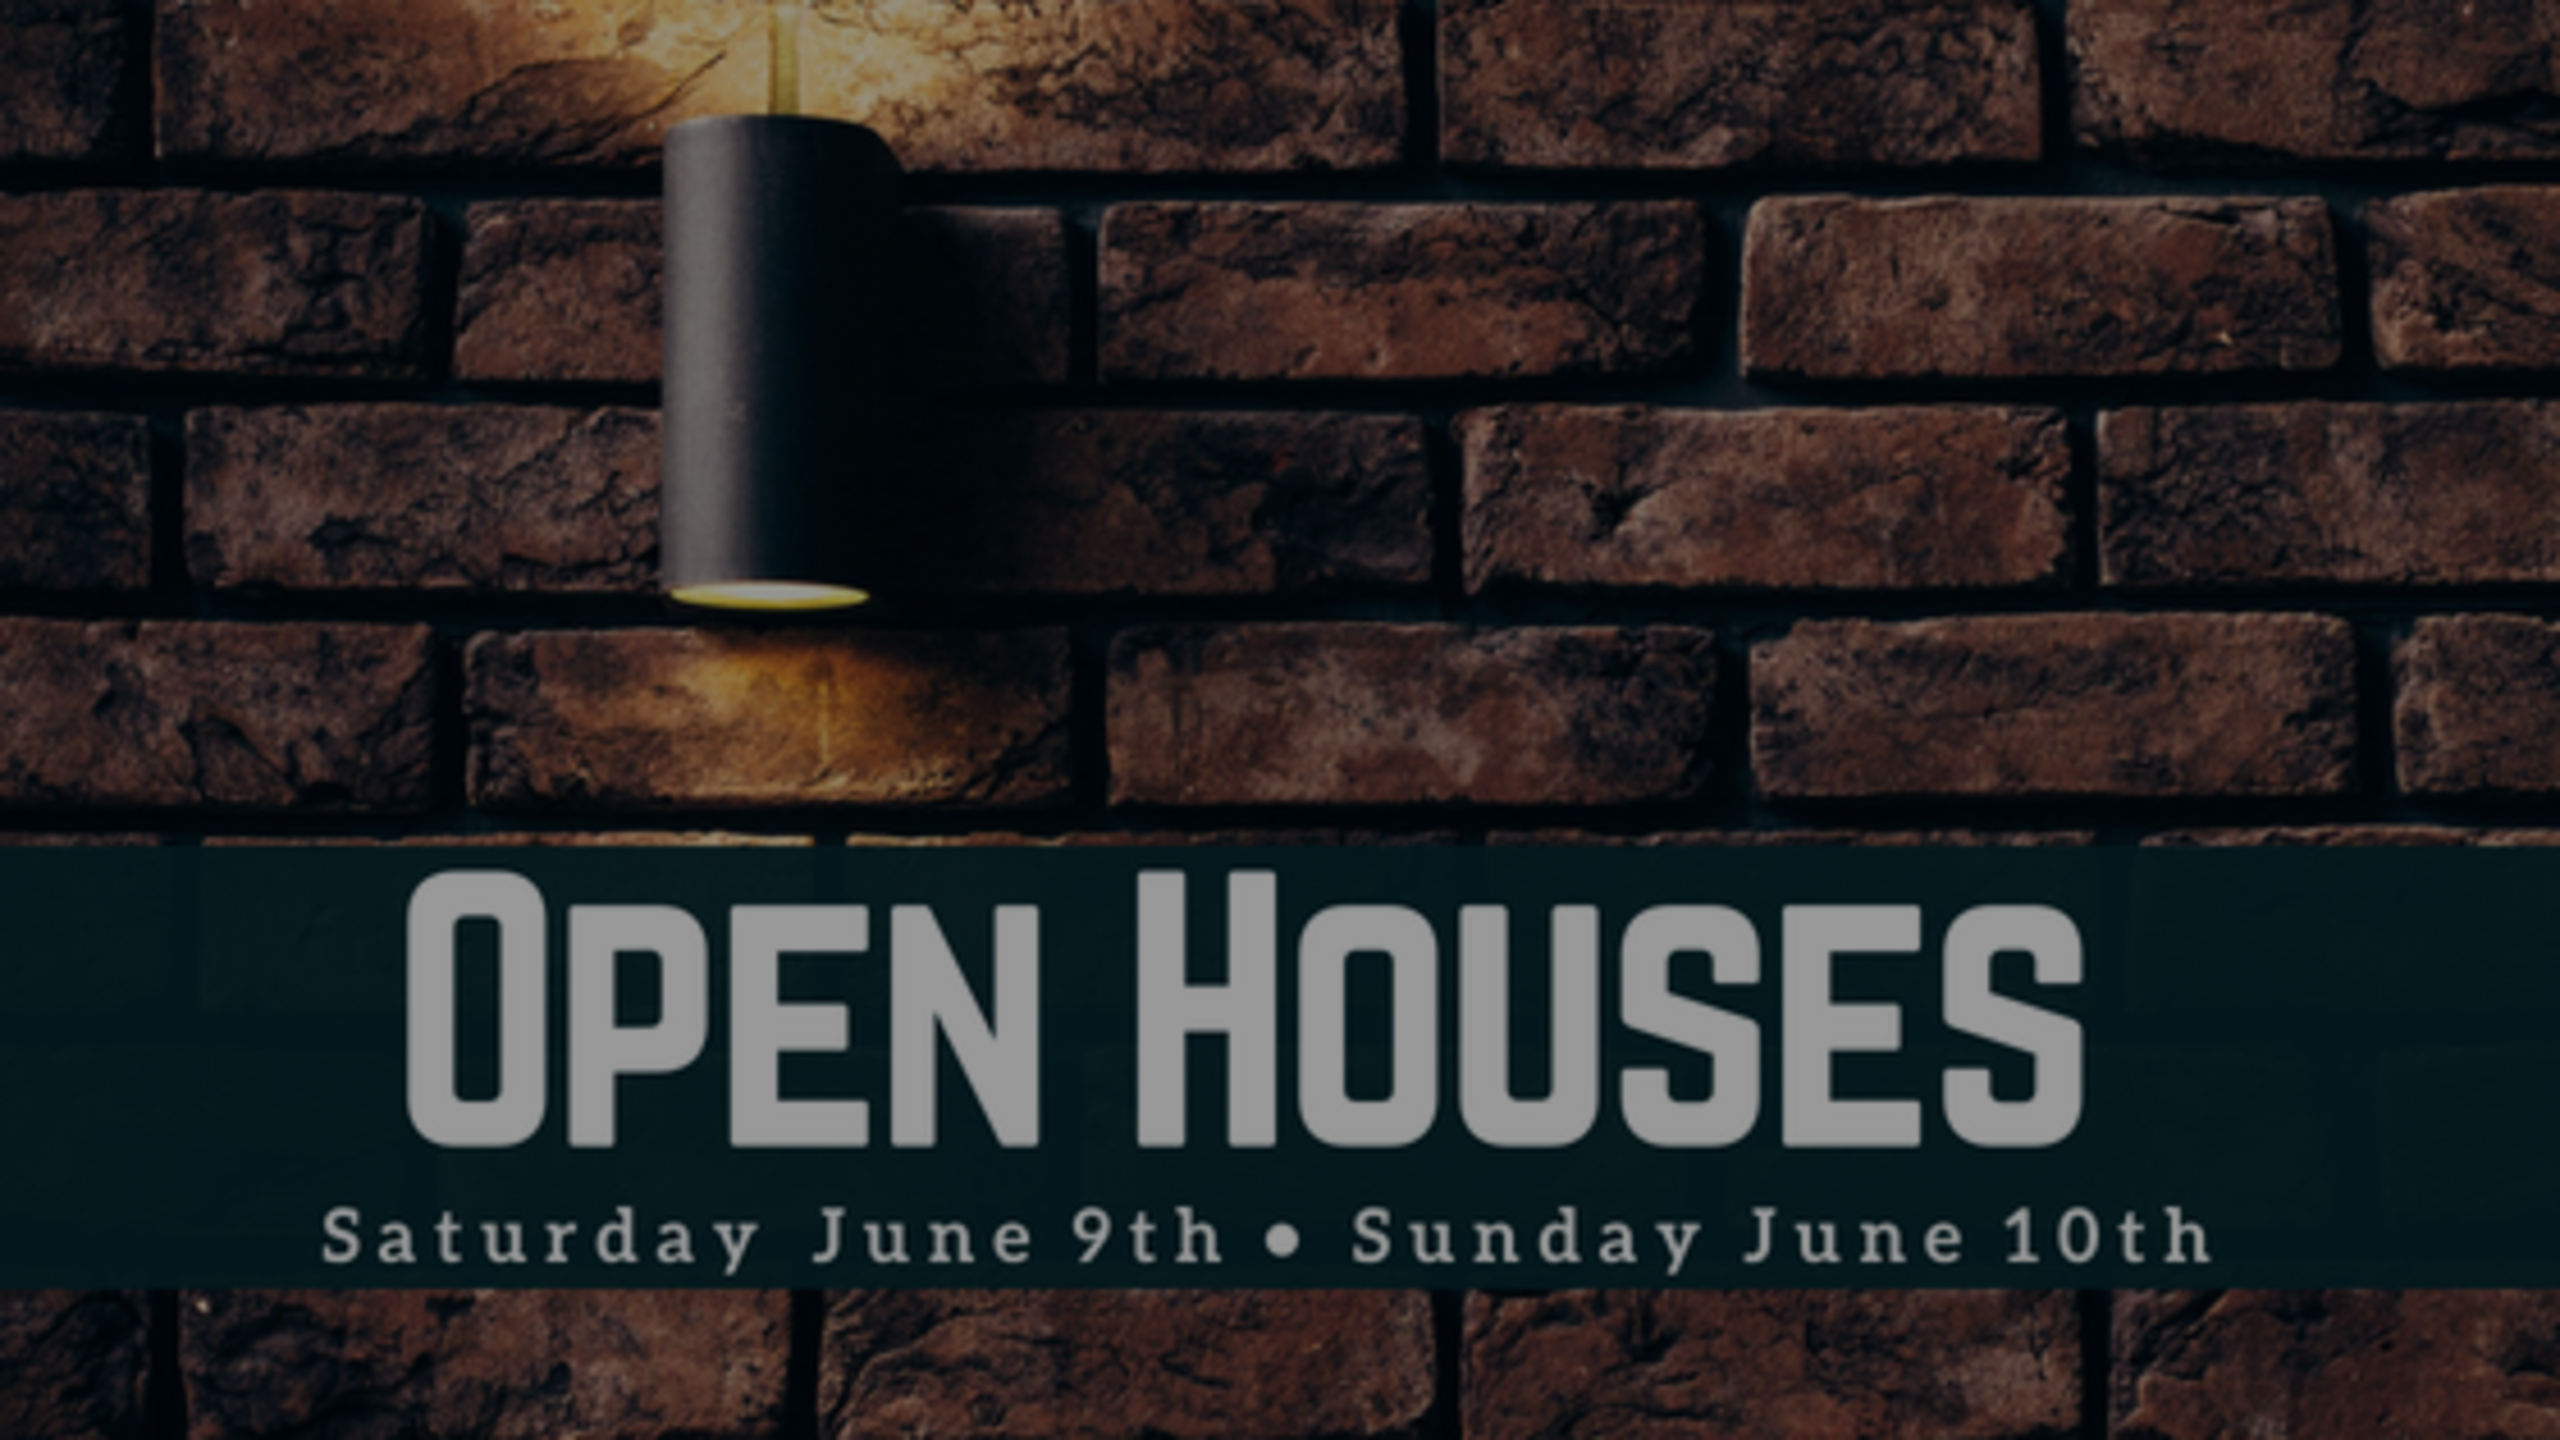 Our Open Houses: Weekend of 6/9 + 6/10